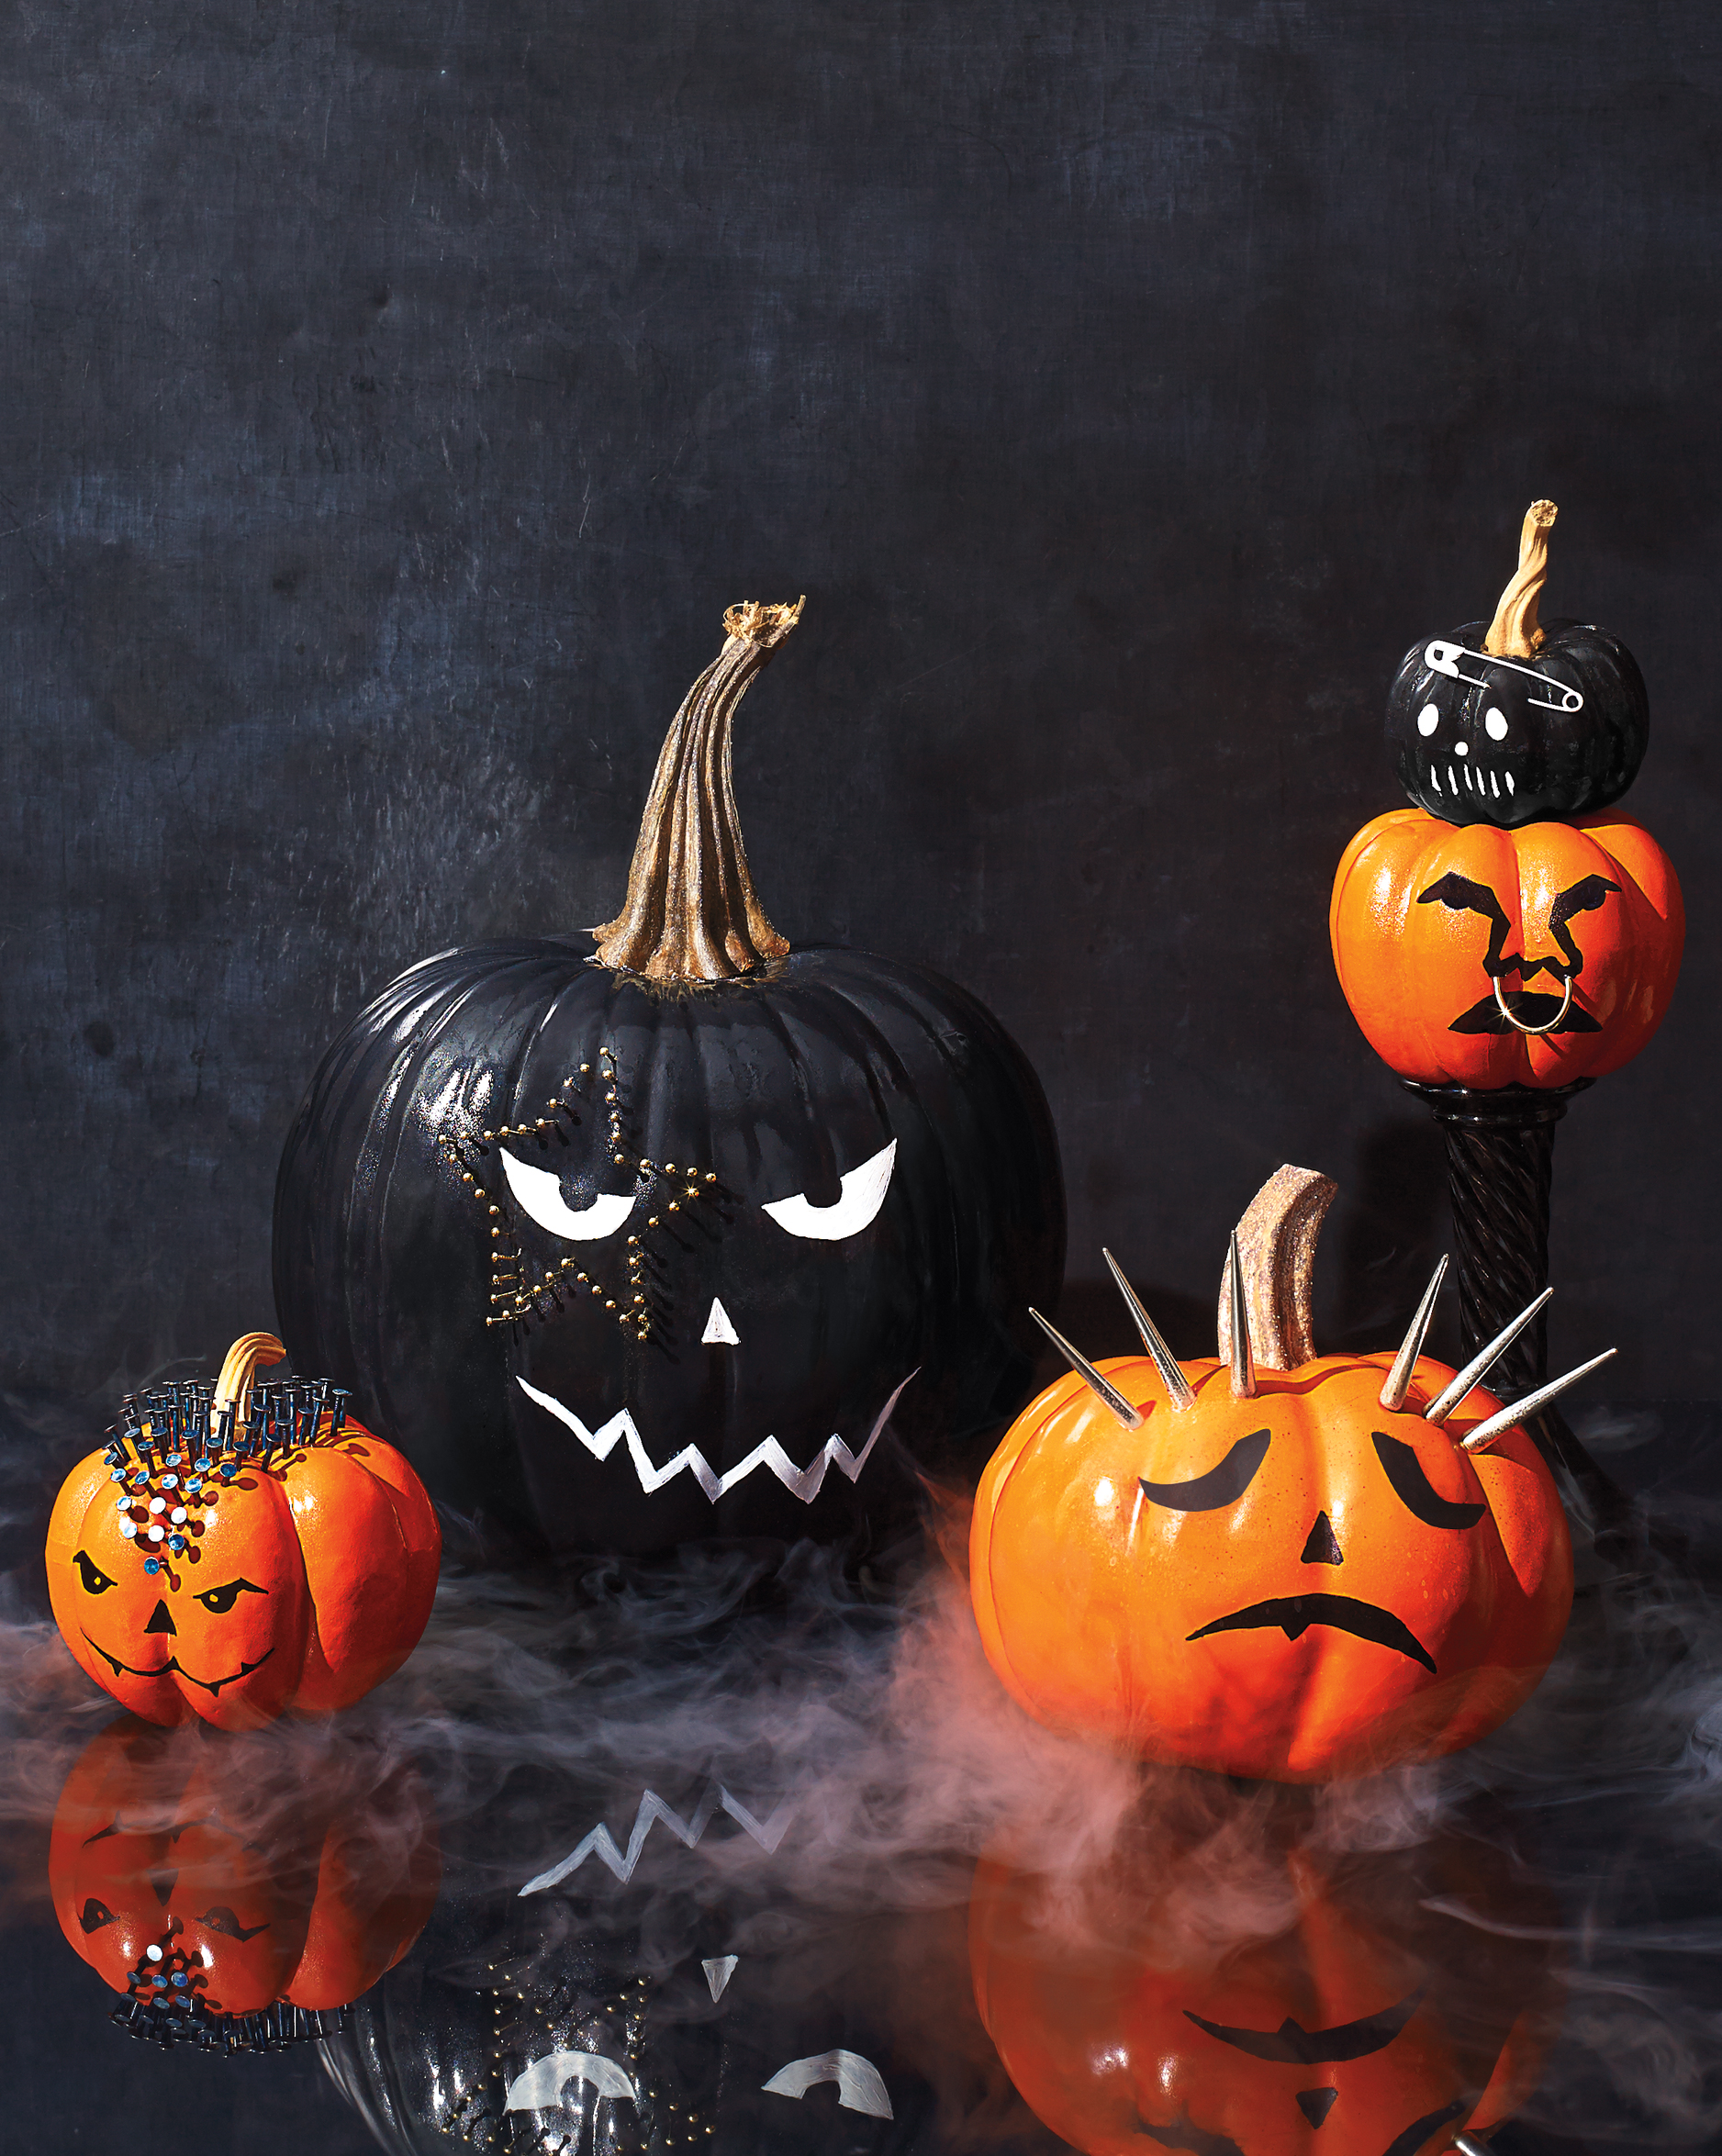 Punk-Rock Pumpkins